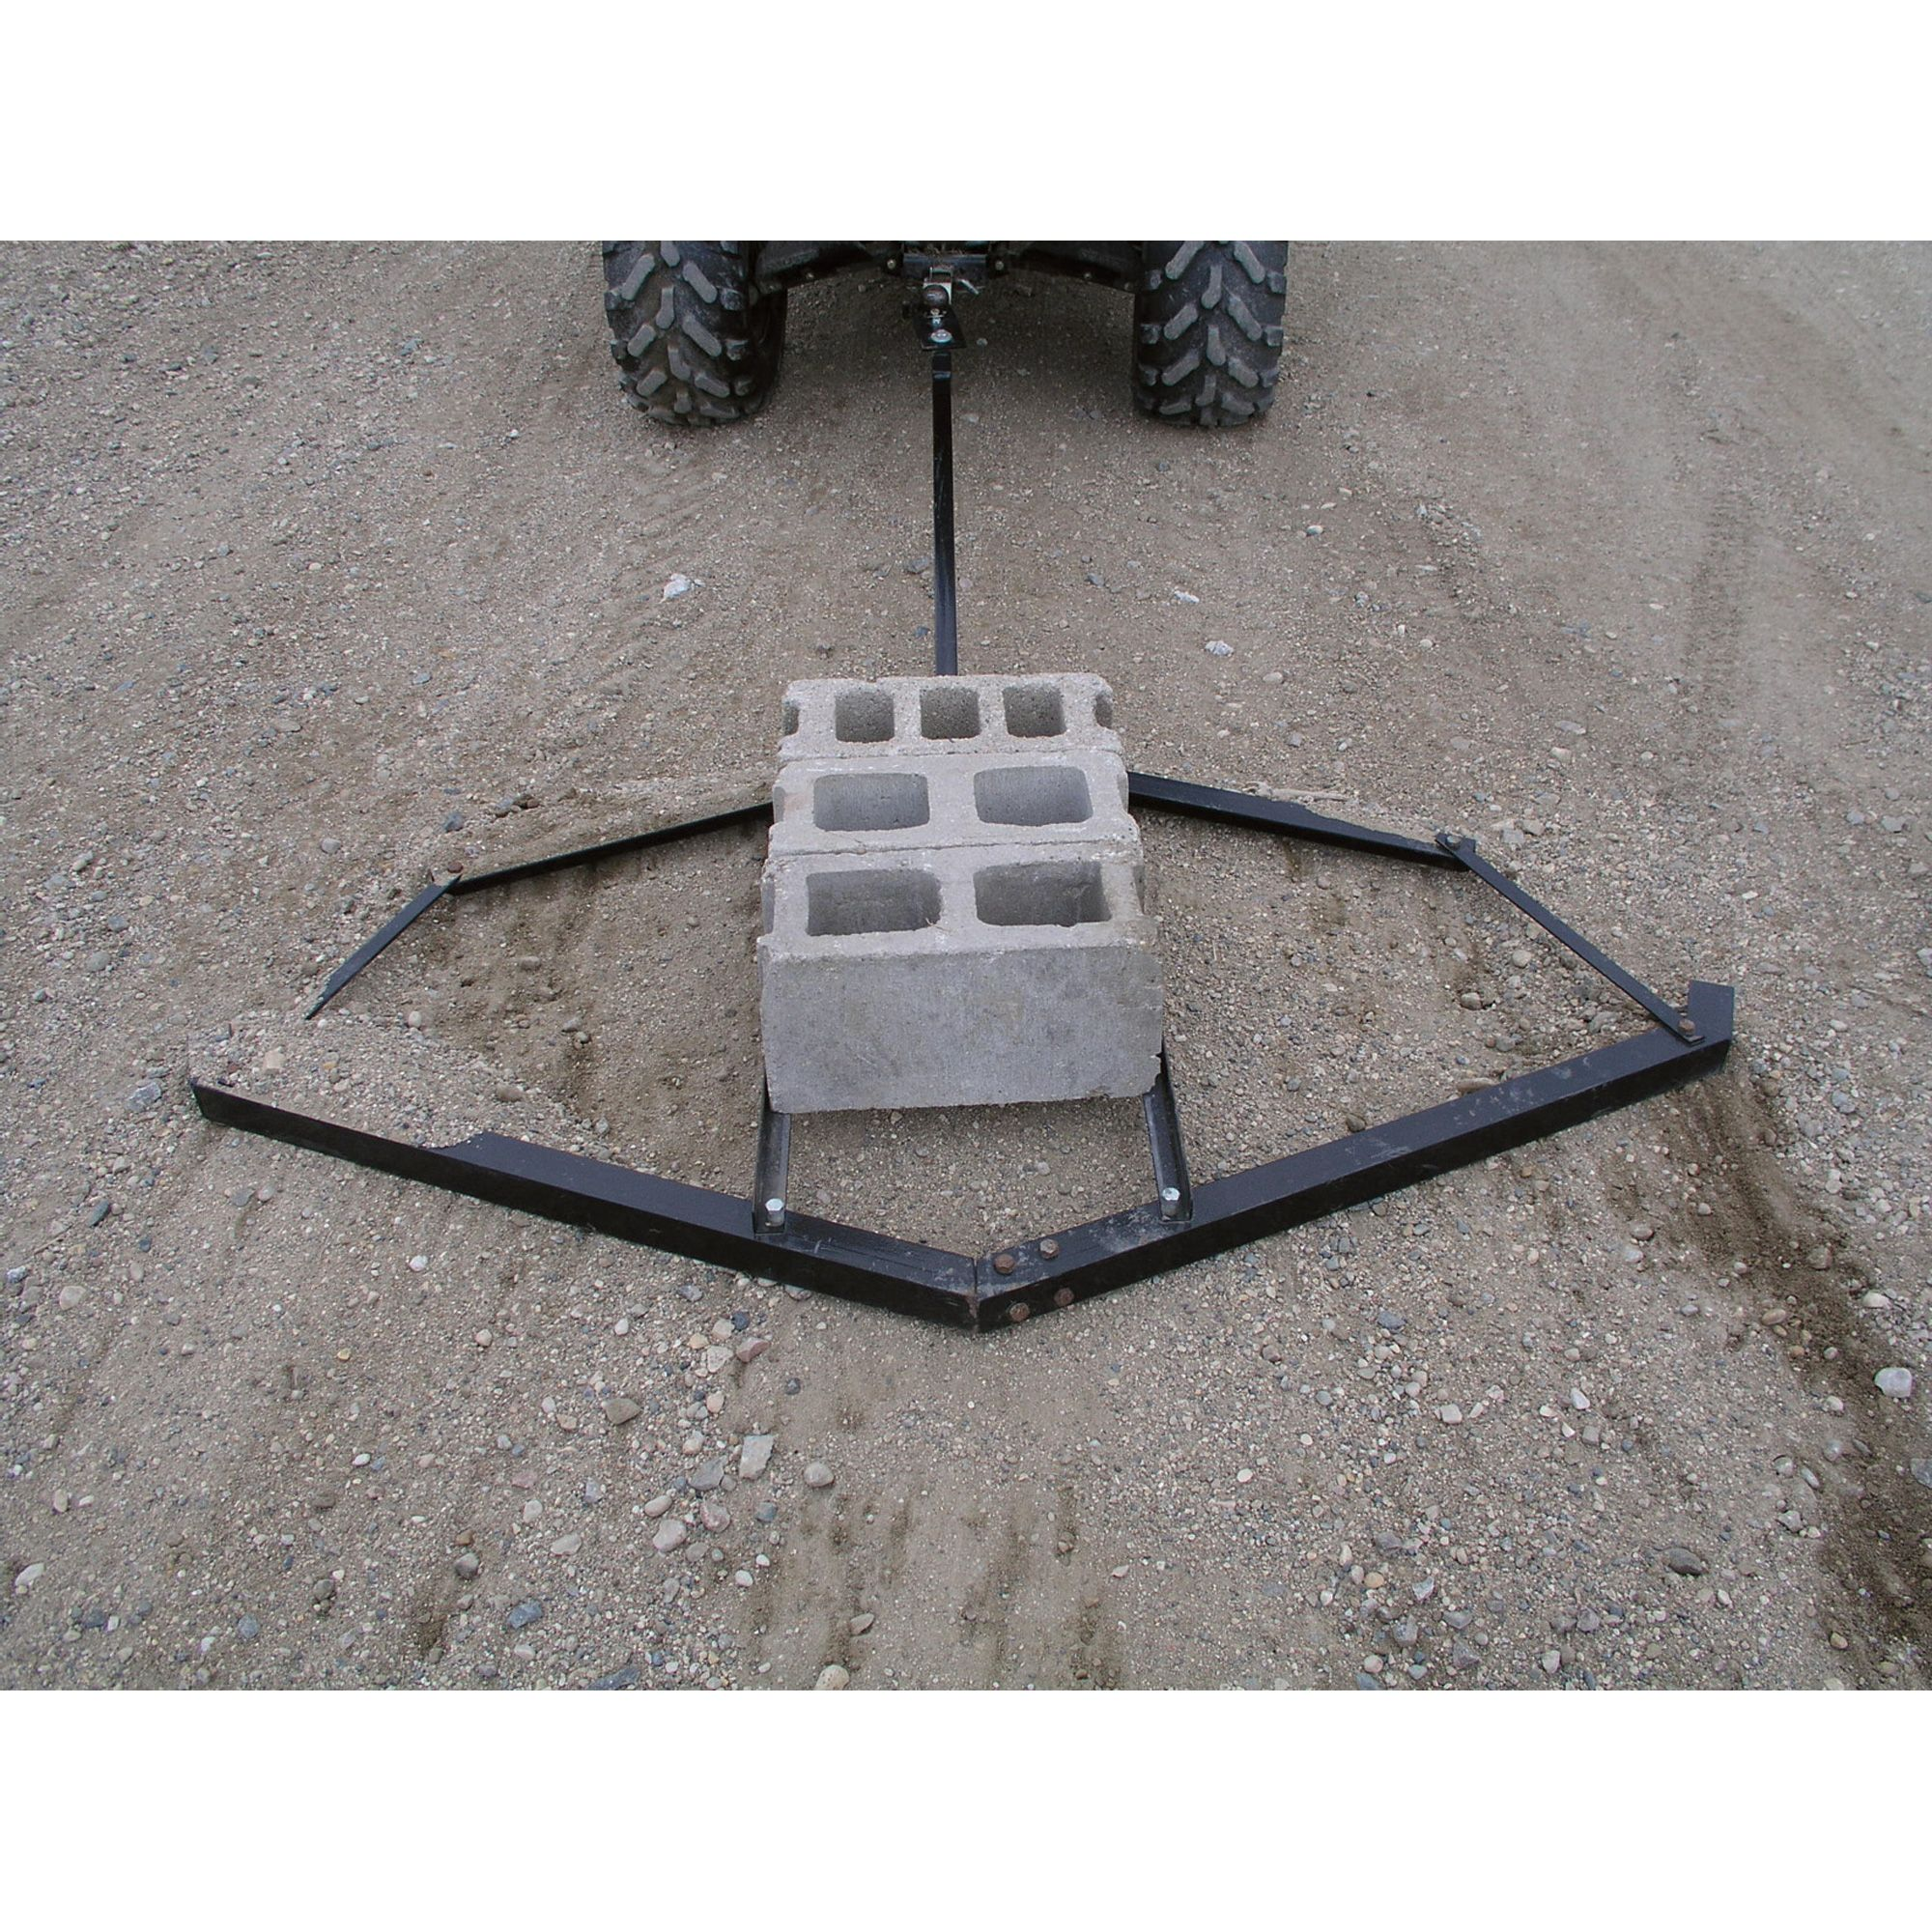 Use This To Level Your Yard Driveway Or Parking Lot Support Bars